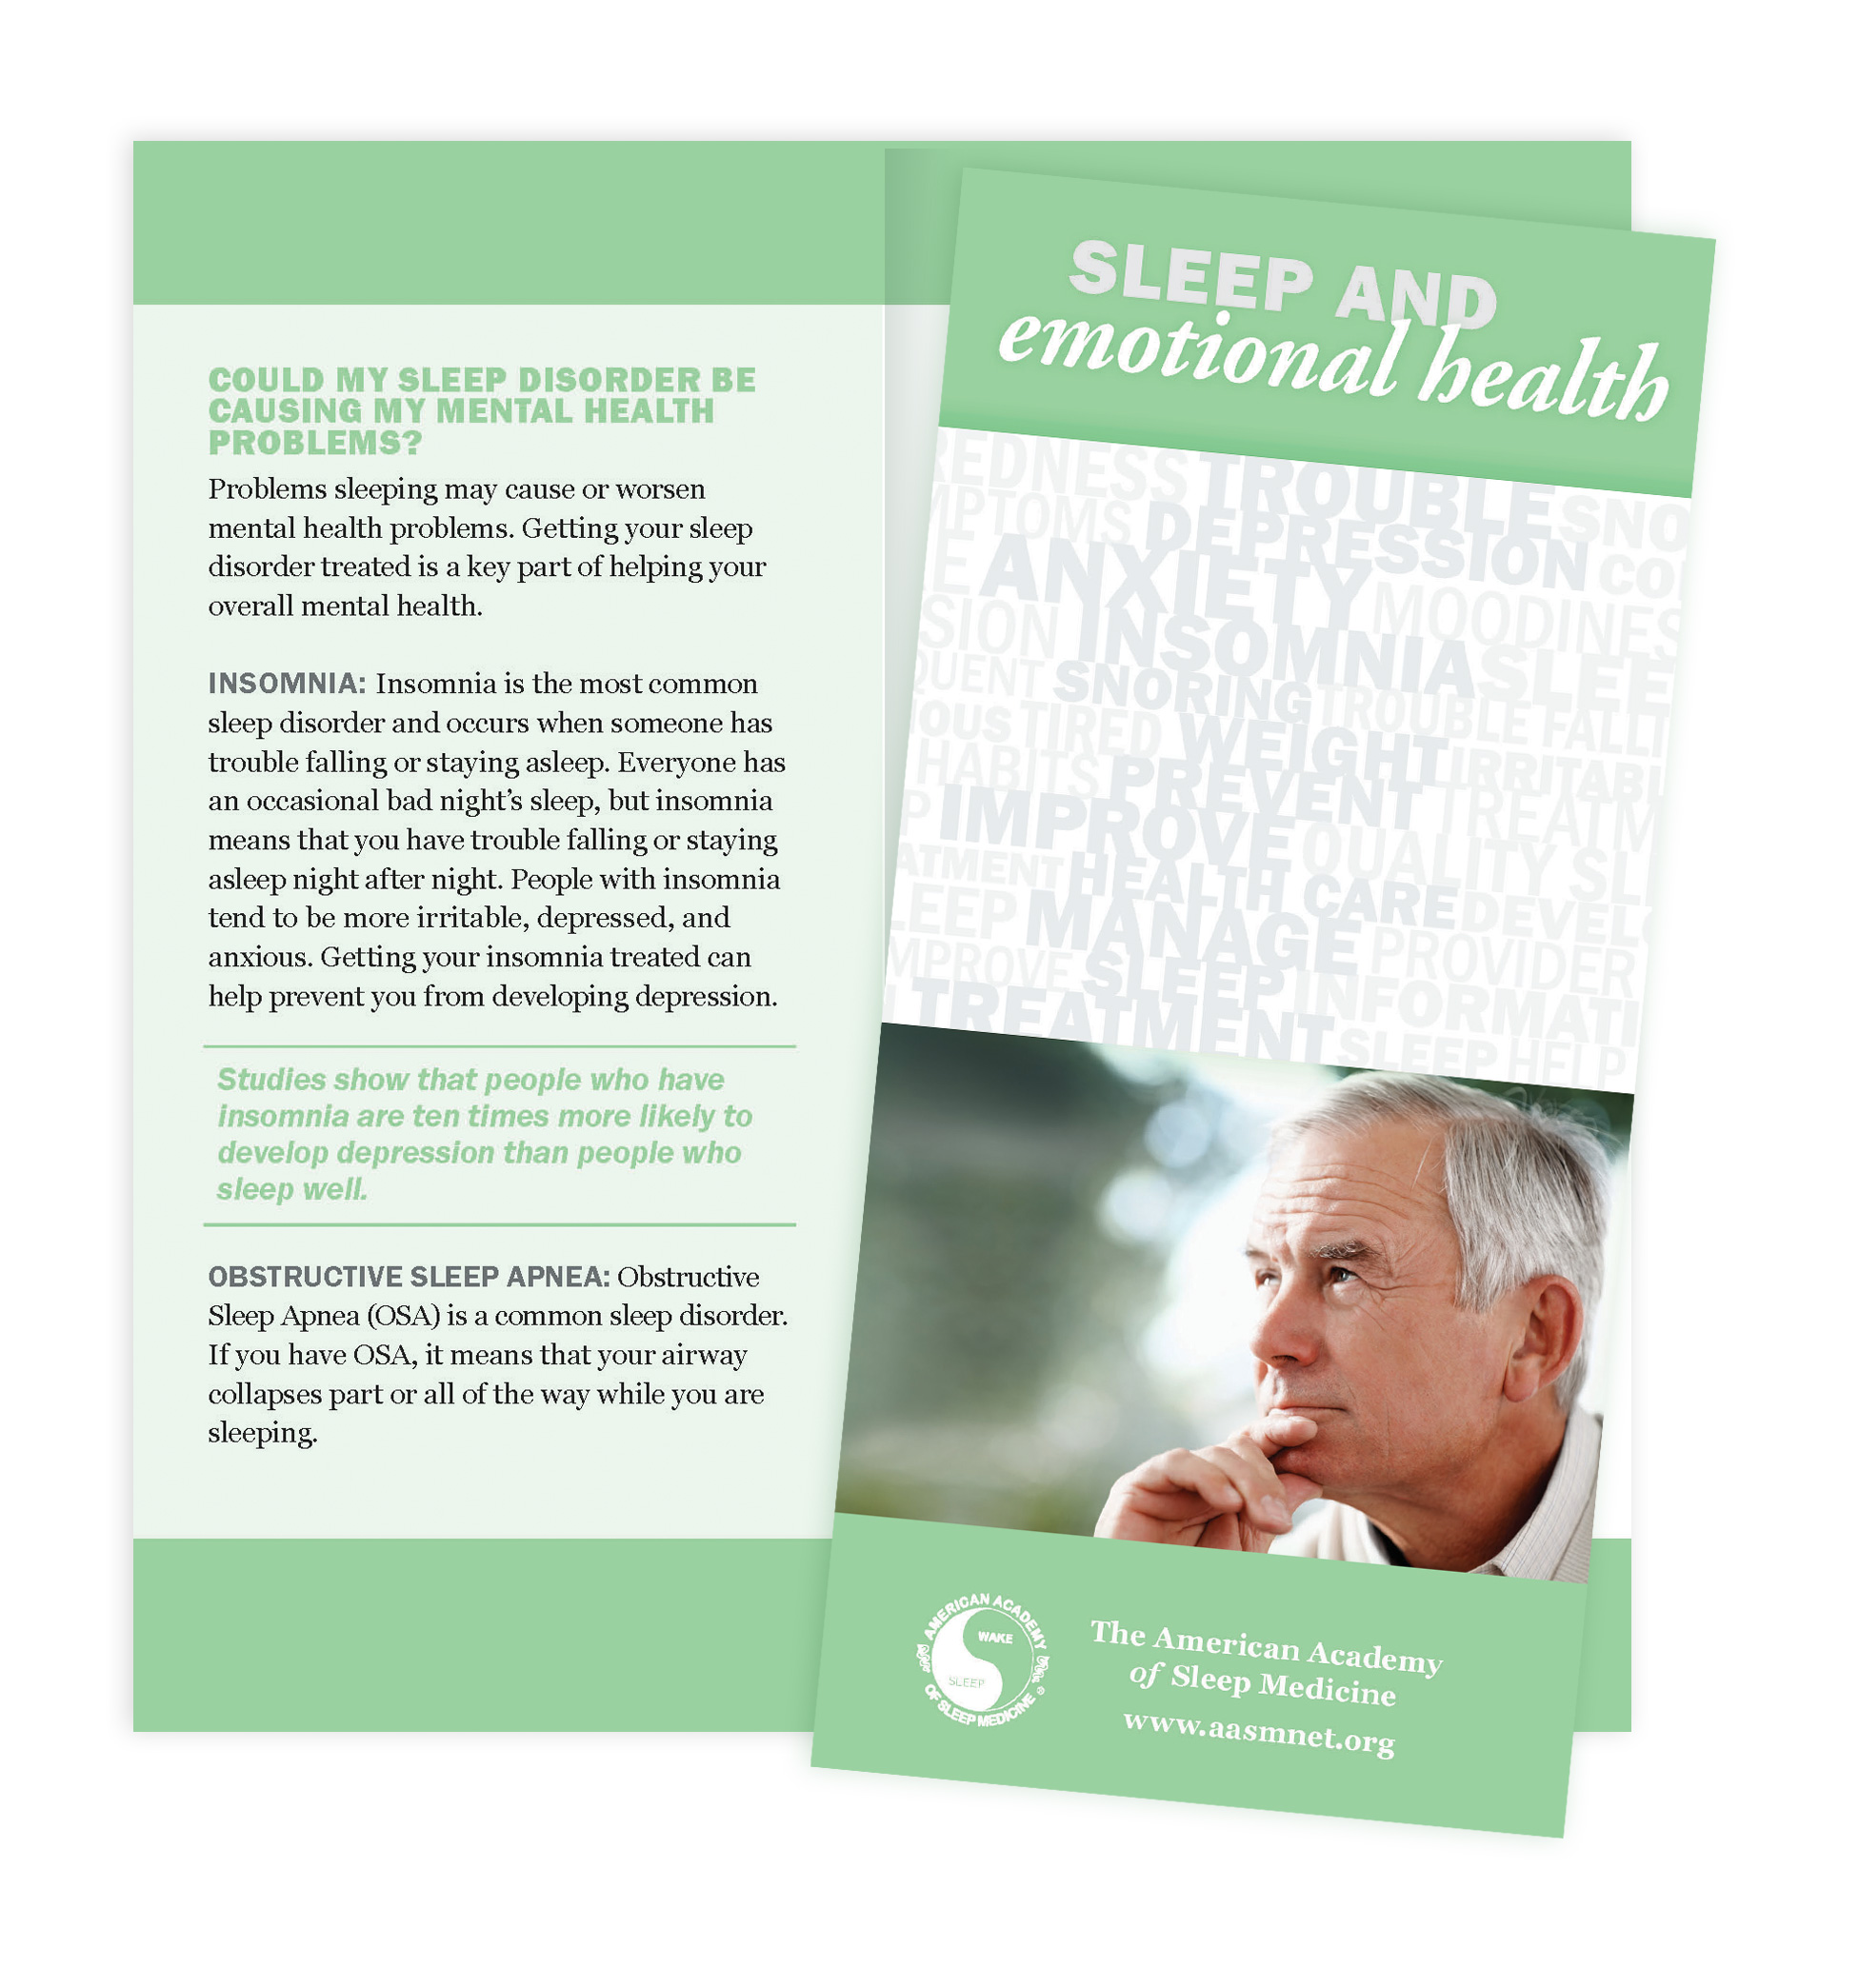 Sleep & Emotional Health Patient Education Brochures (50 brochures)